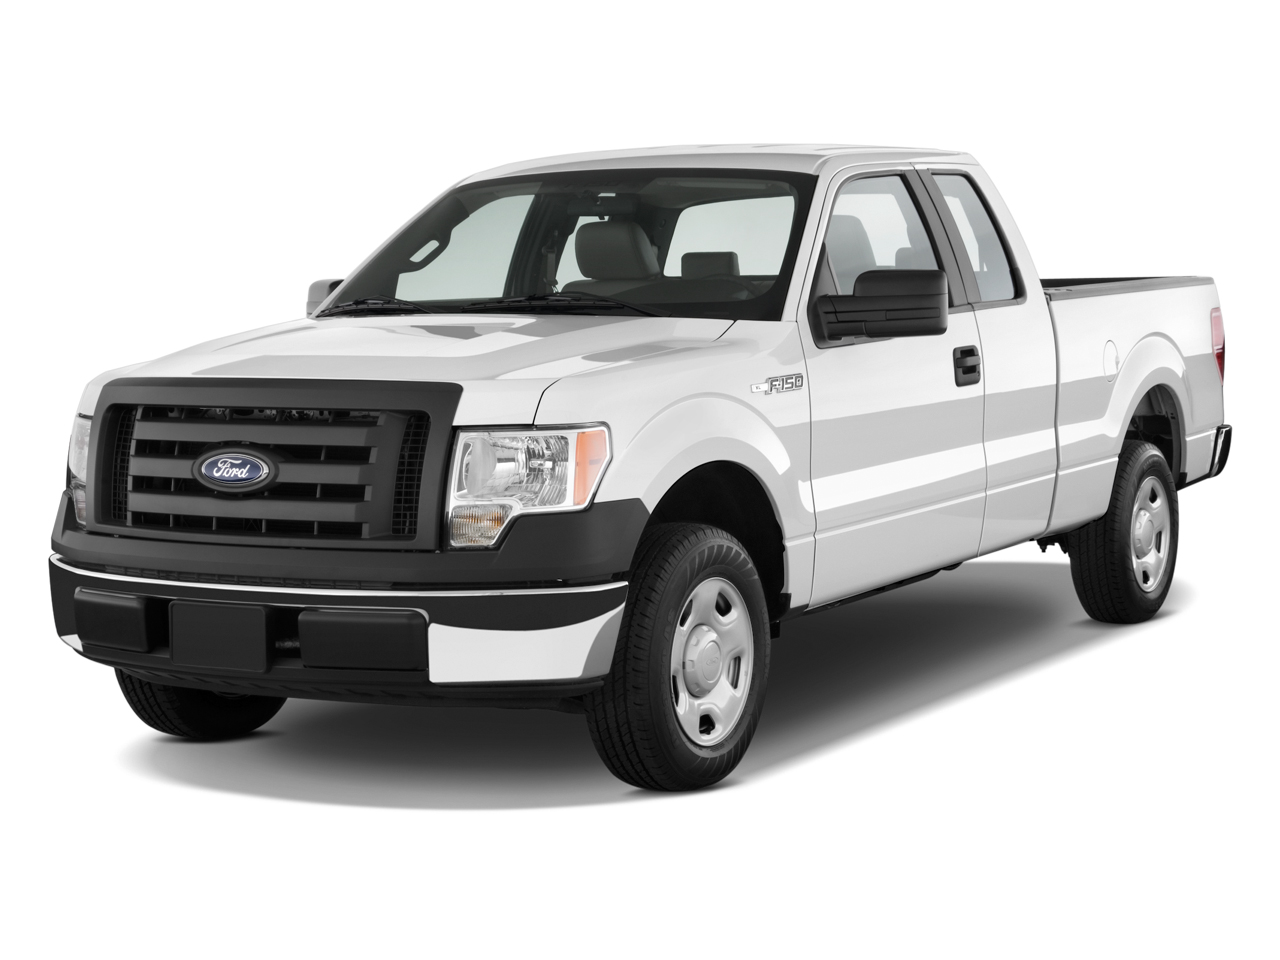 Ford F-150 SuperCab 4x4